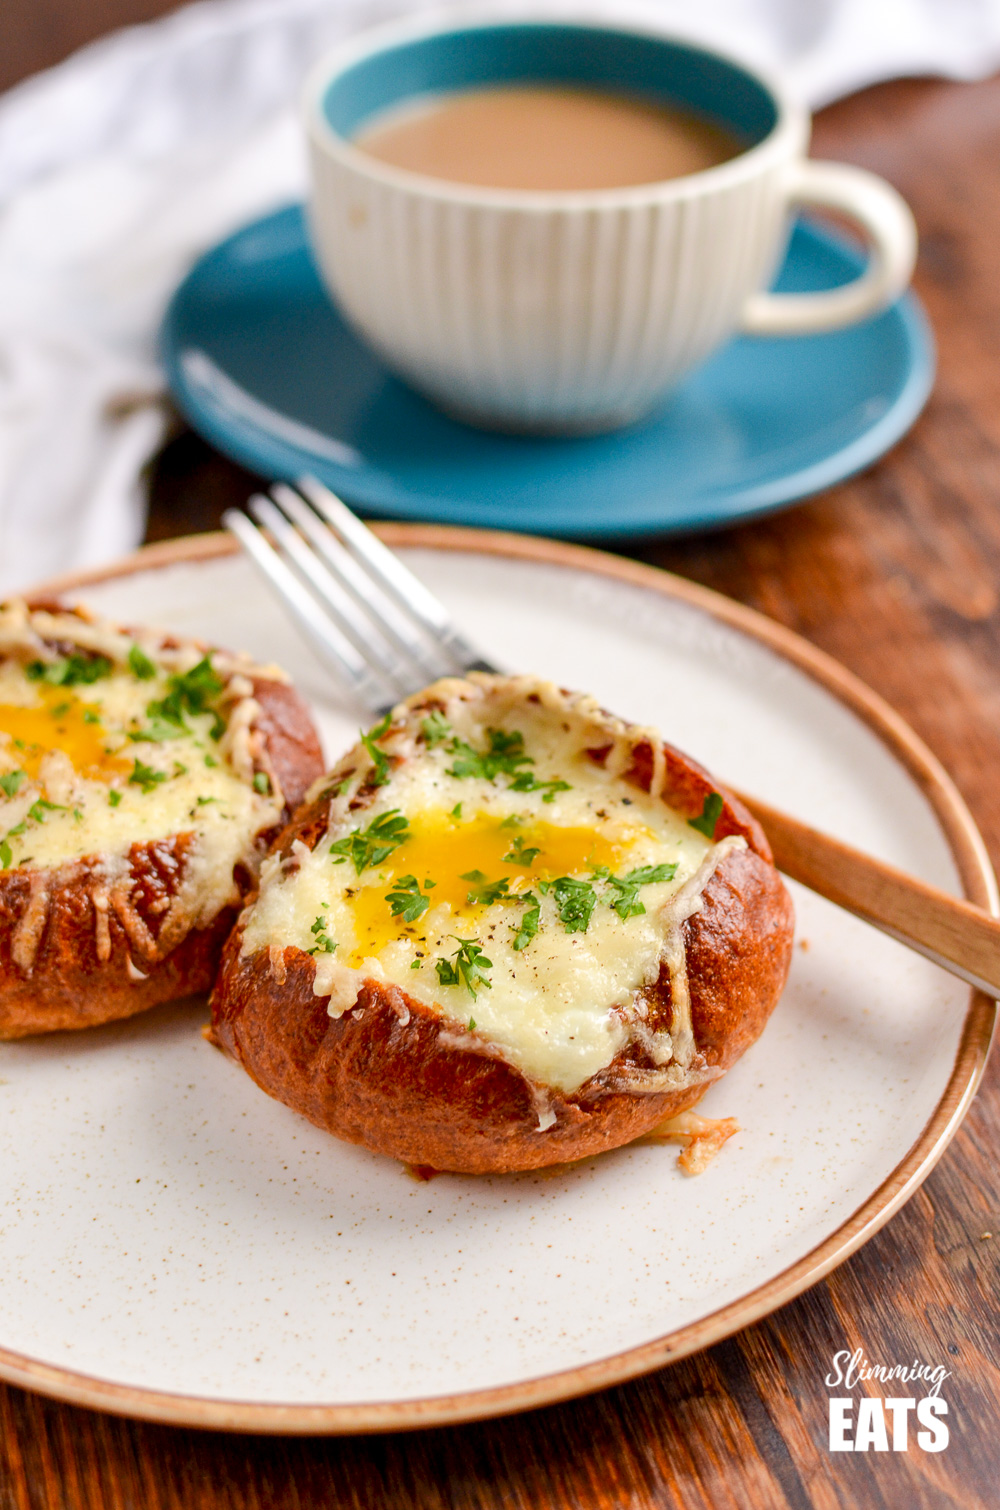 breakfast roll bakes on cream plate with fork and cup and sauce in background with coffee